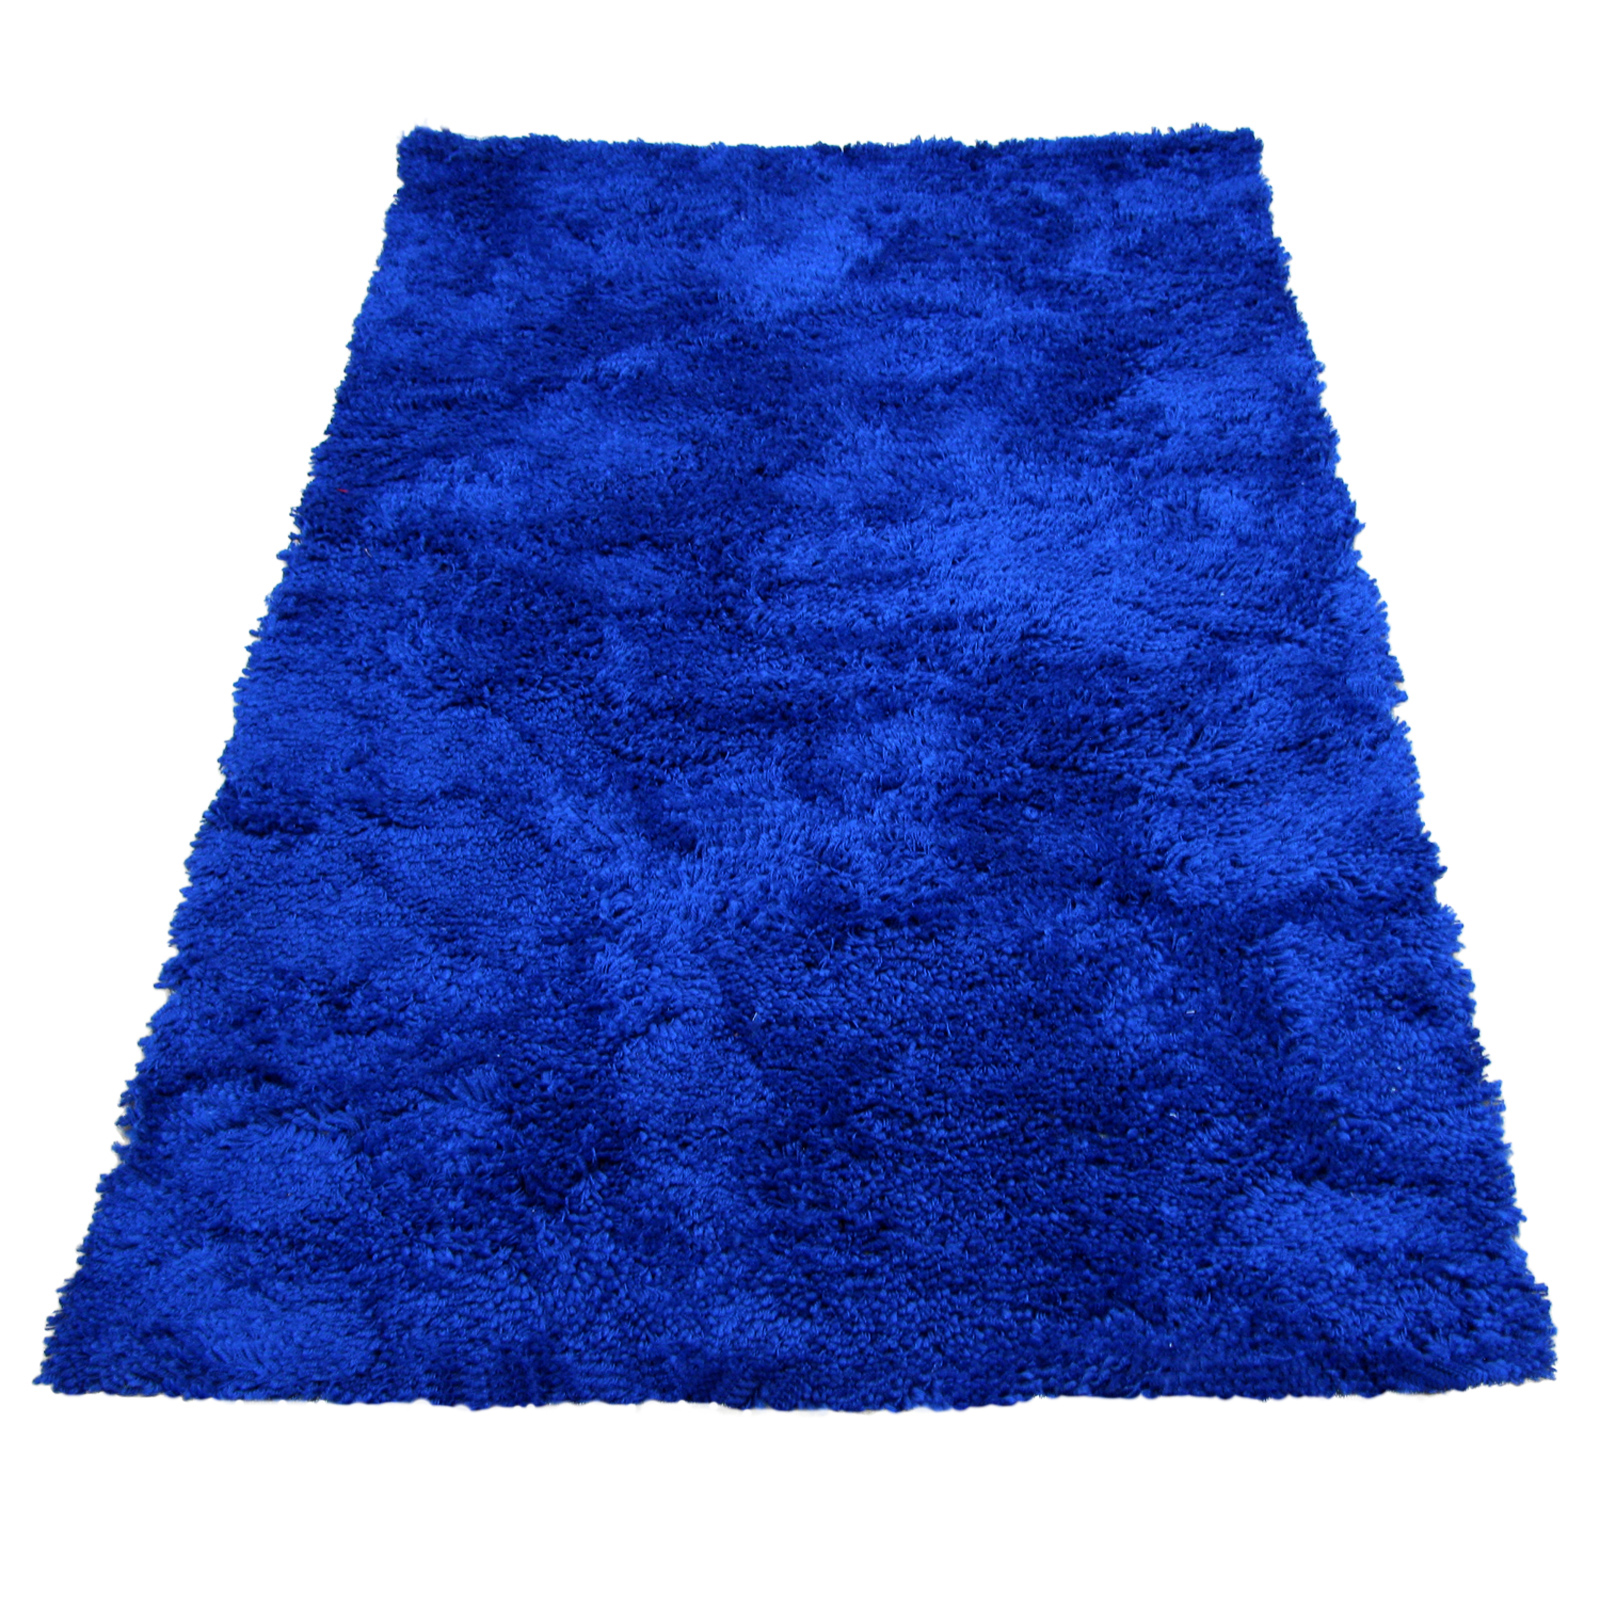 Shaggy Blue Quality Thick Luxurious Extra Soft Large Rug